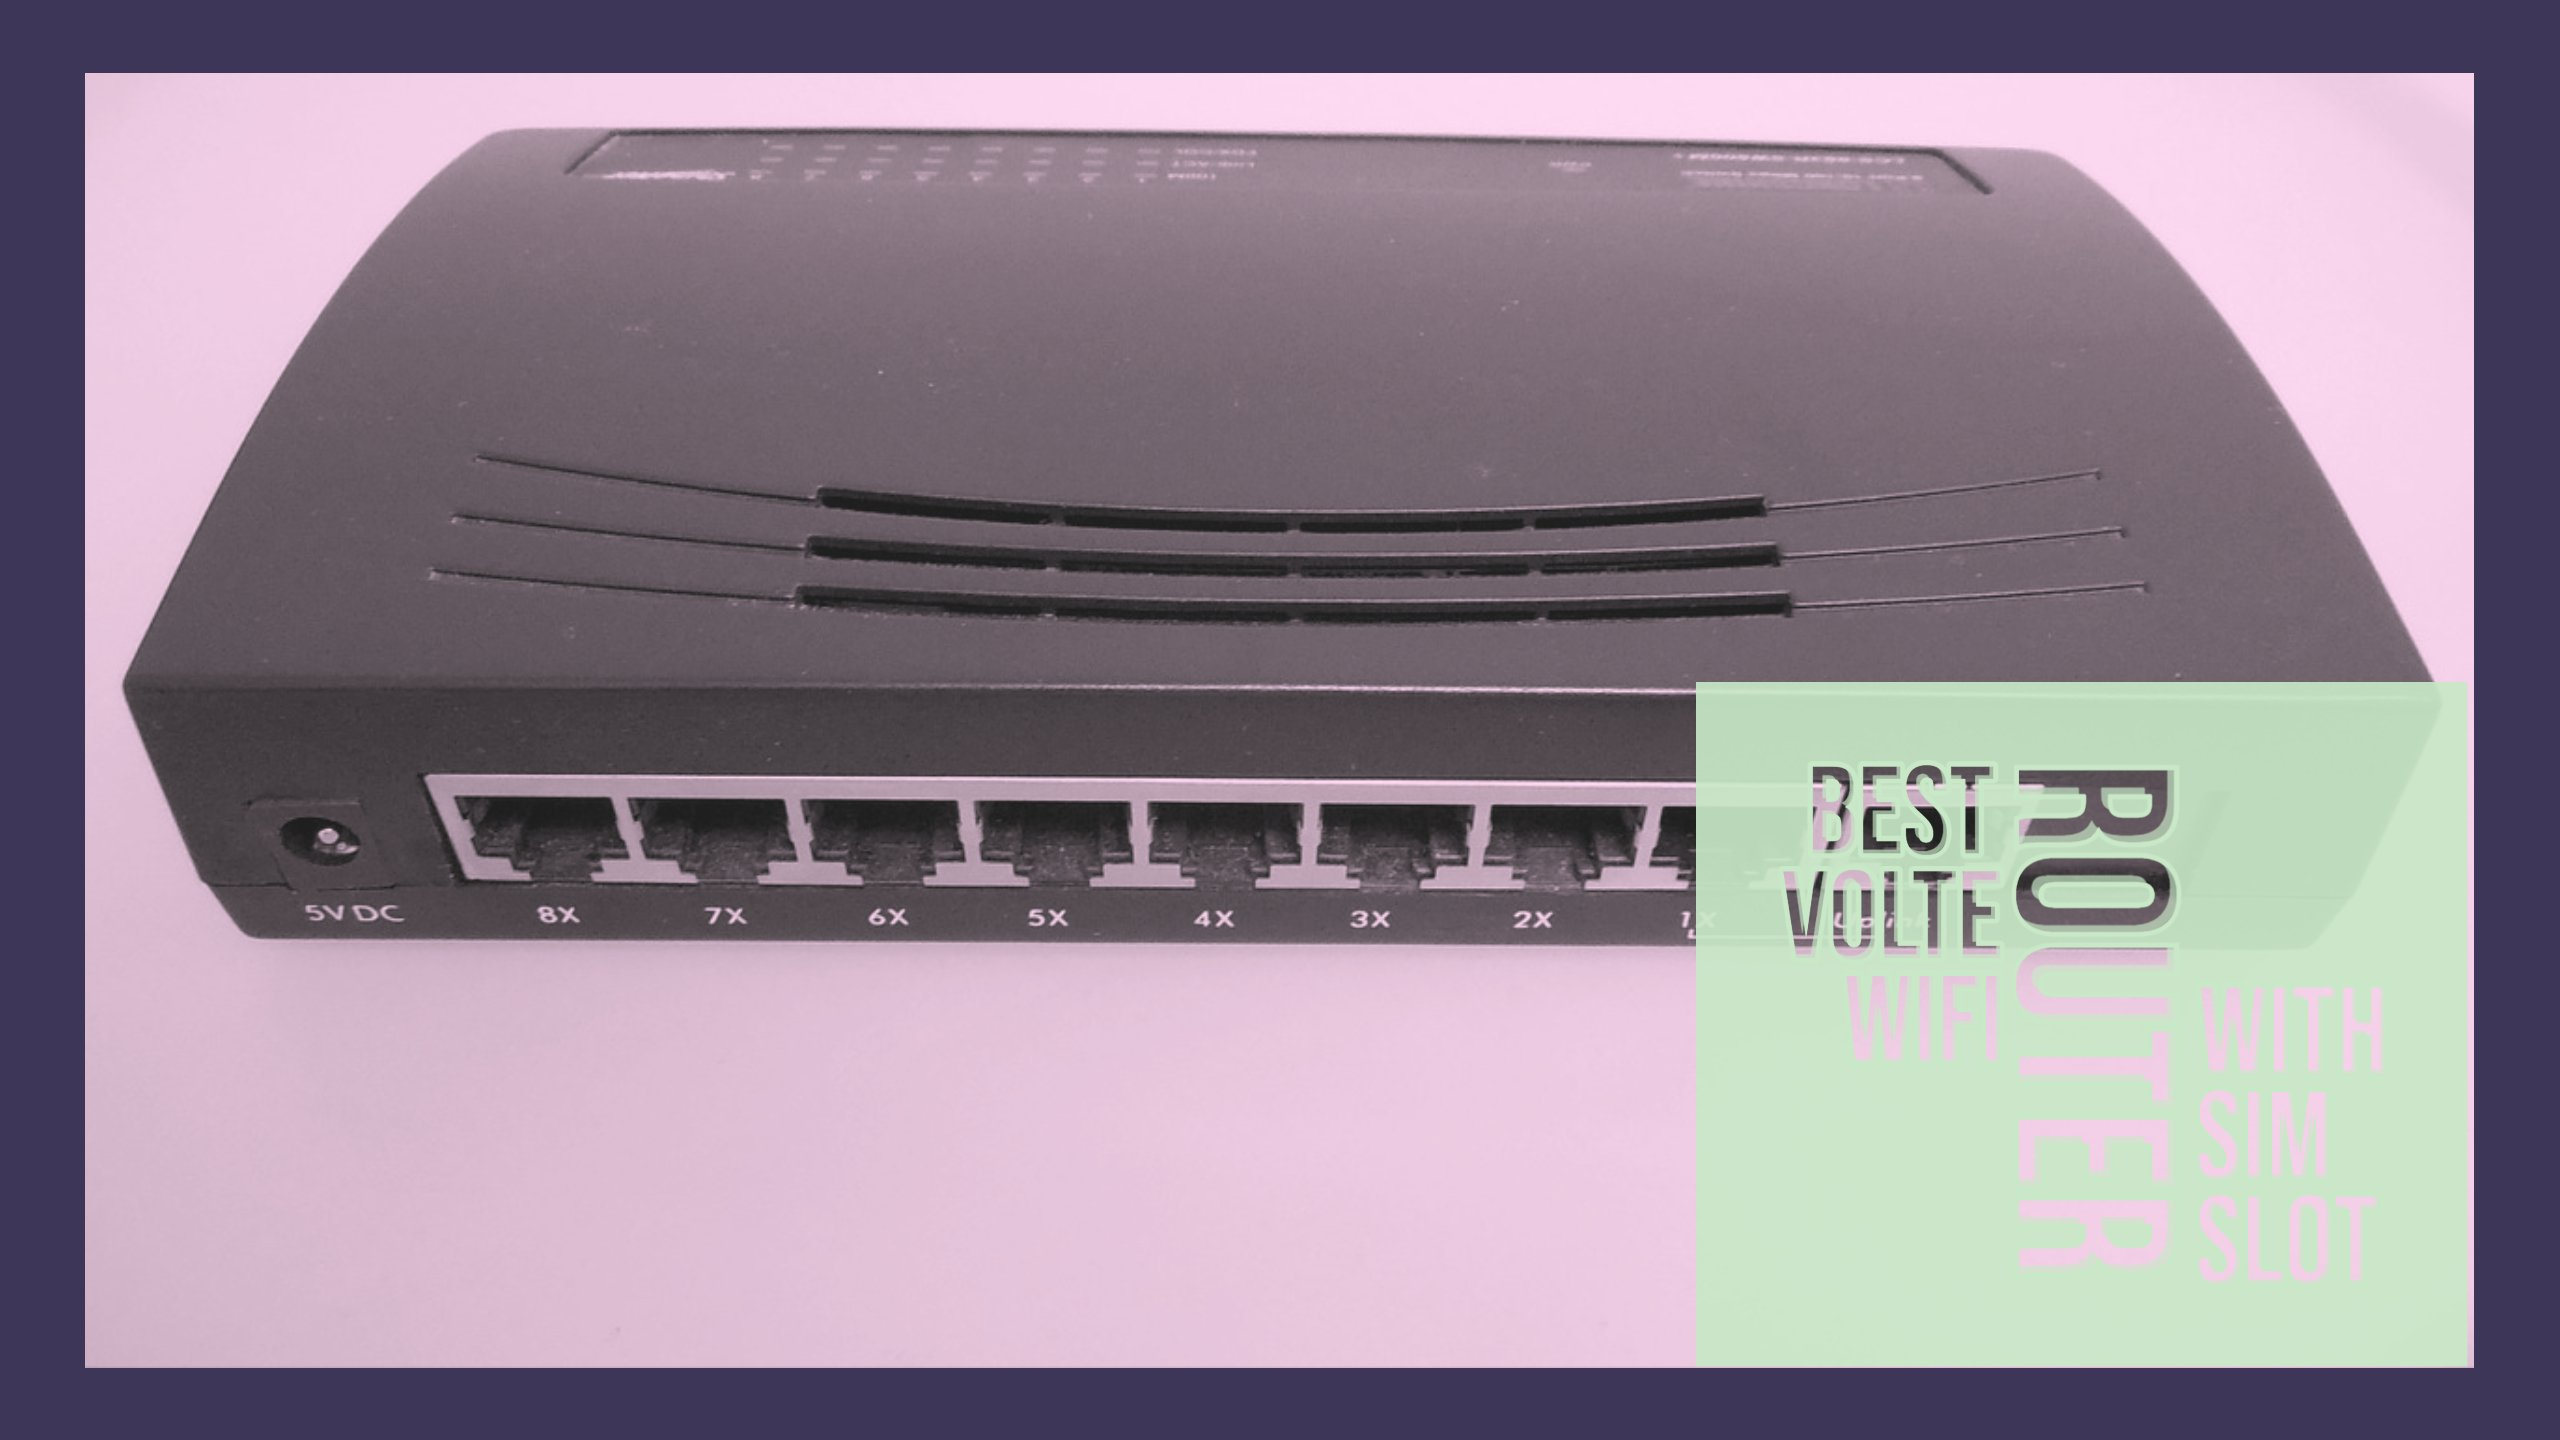 Best Volte WiFi Router with SIM Slot